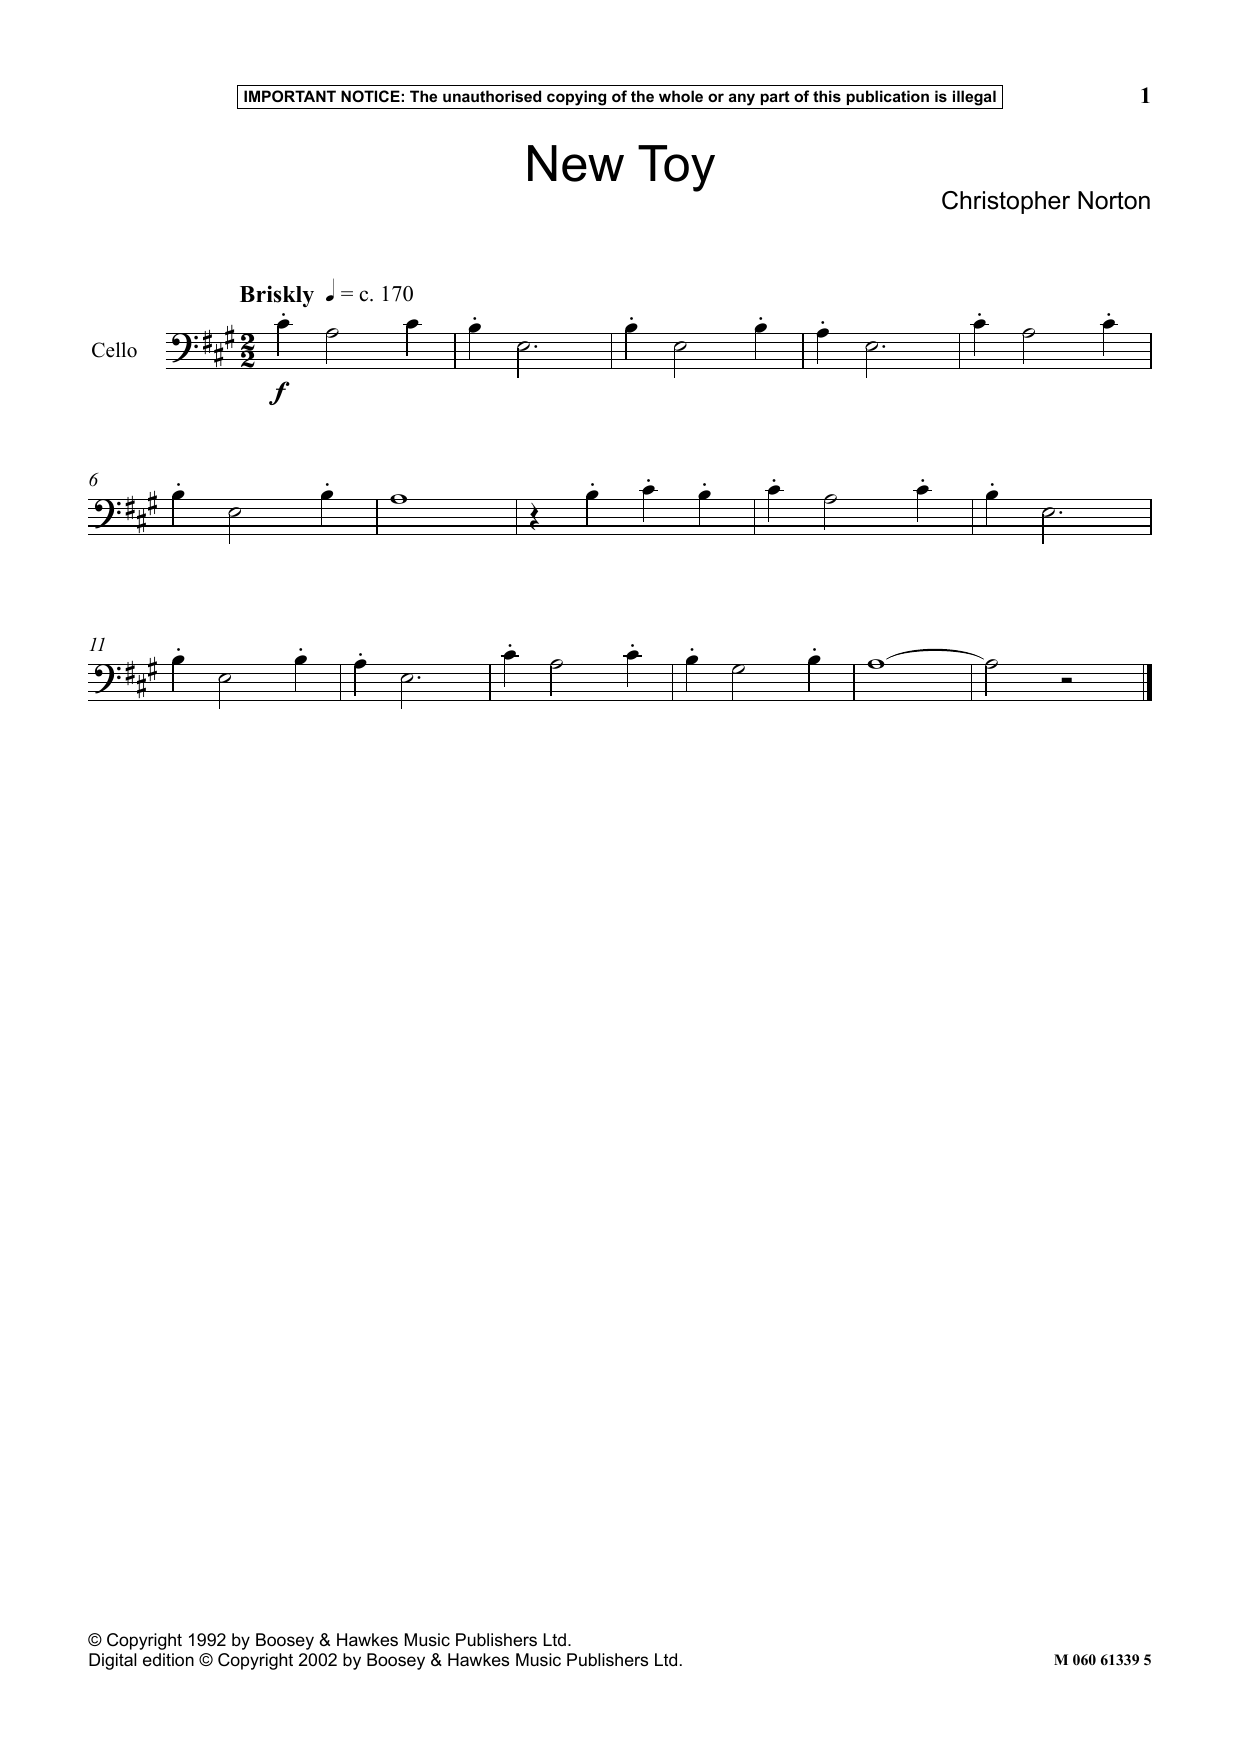 Christopher Norton New Toy sheet music notes and chords. Download Printable PDF.